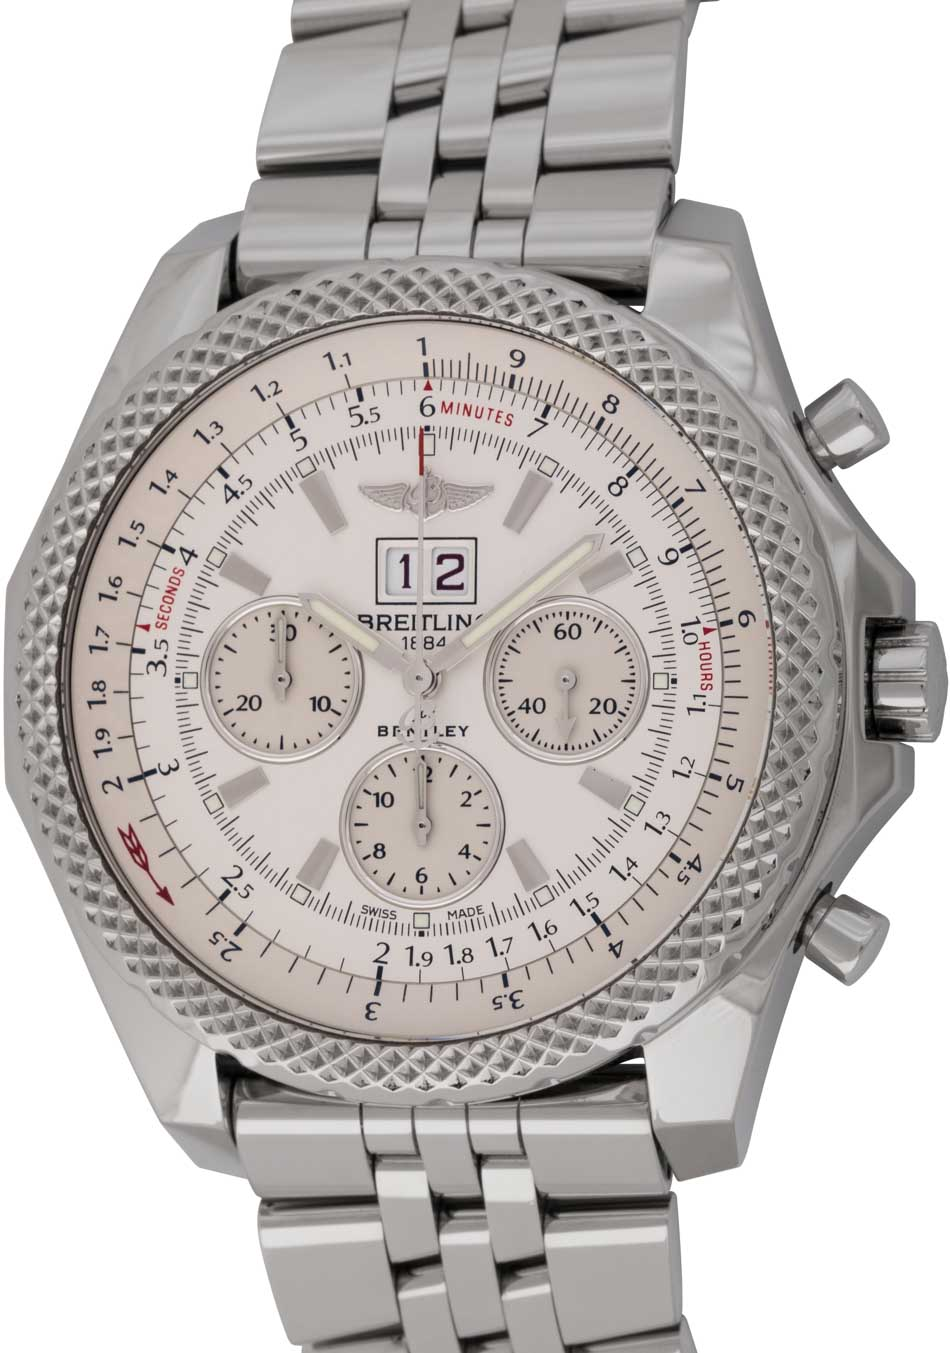 Breitling Bentley 6 75 Chronograph A44364 Sold Out Silver Dial